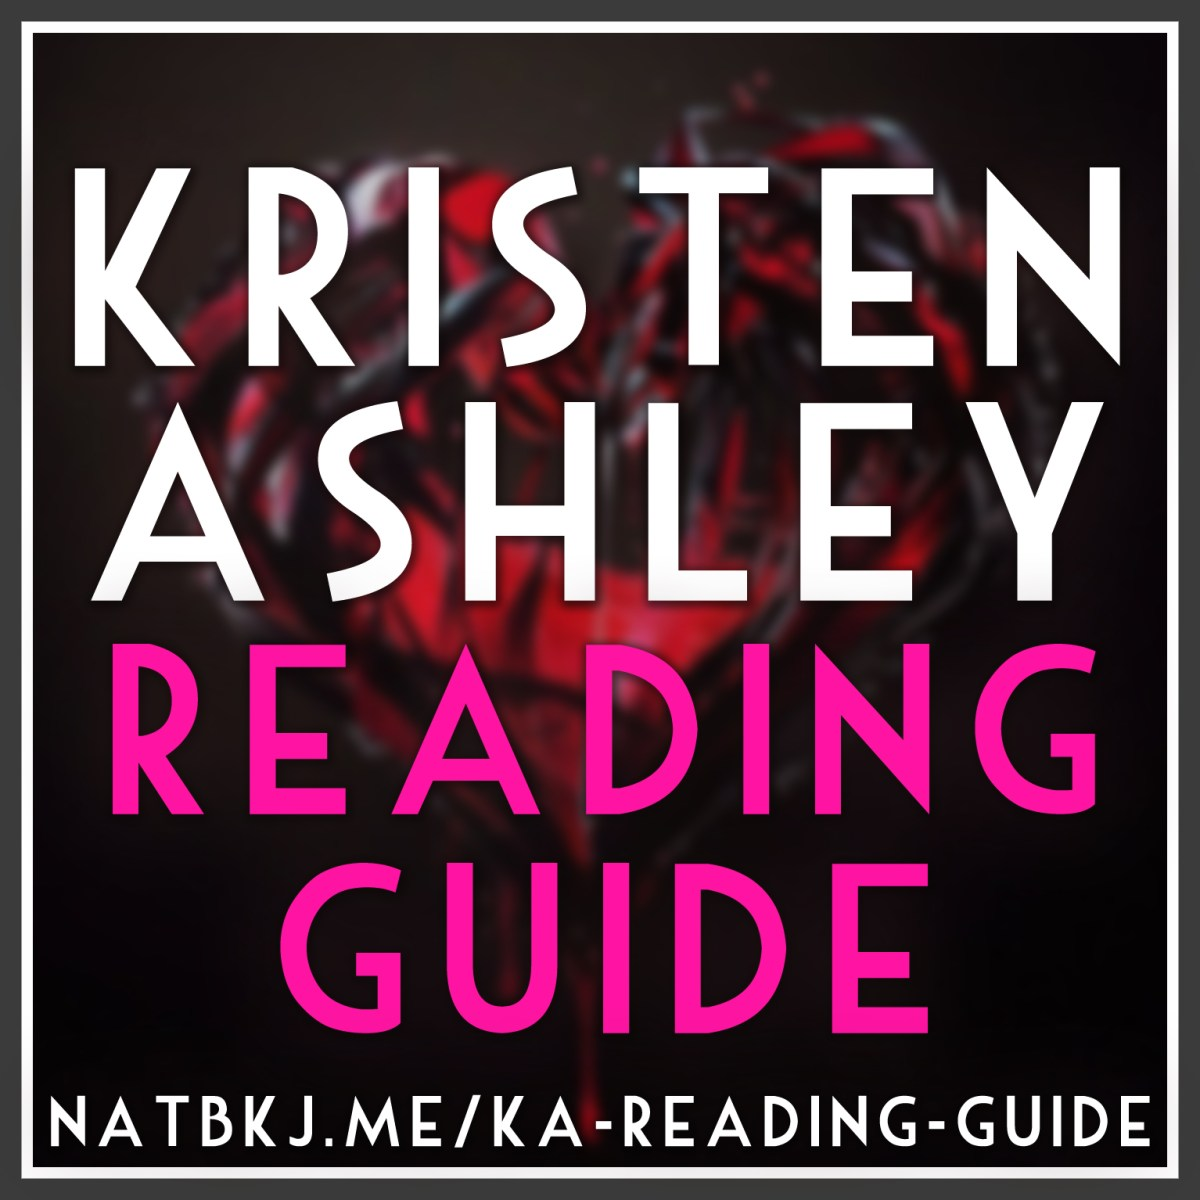 The ULTIMATE Kristen Ashley Reading Guide